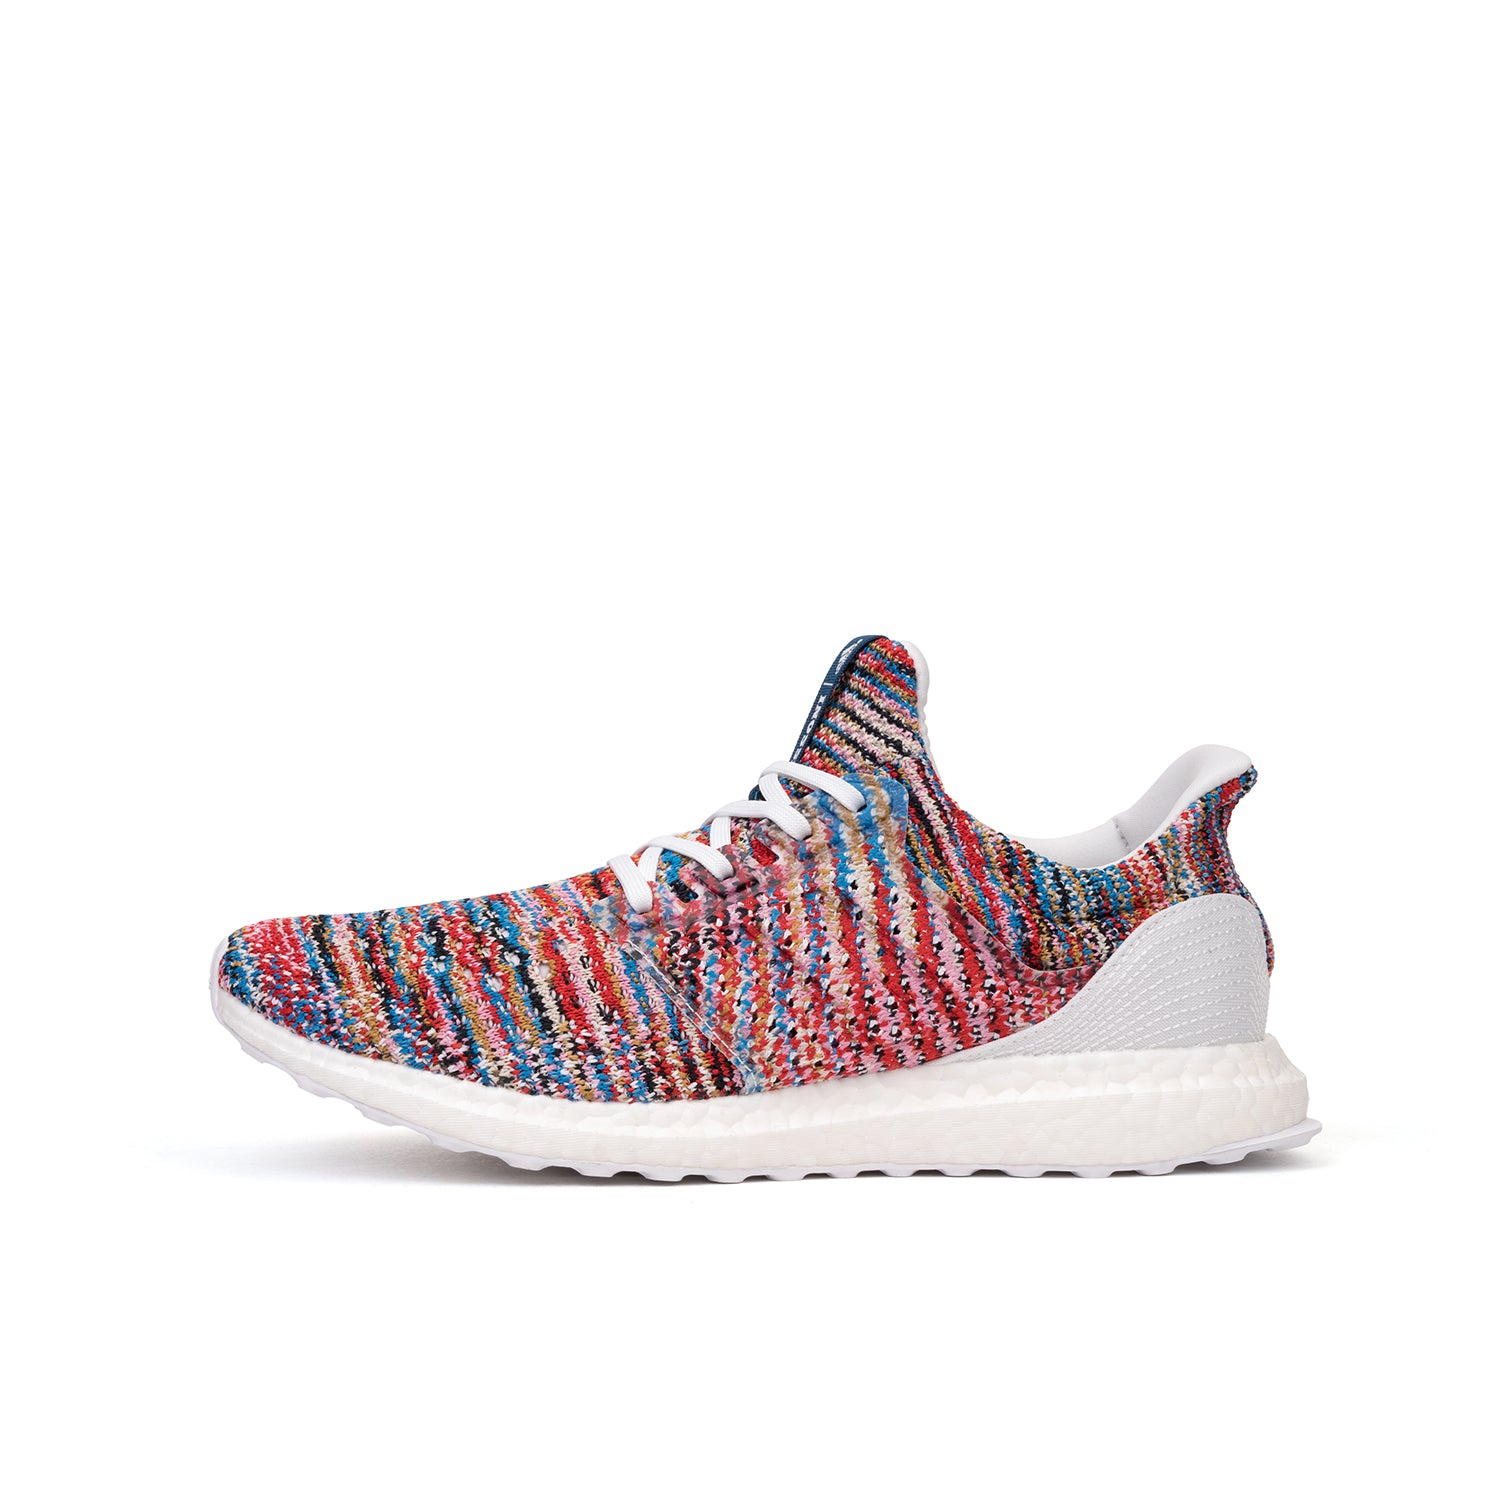 85650cca45fc6 adidas x Missoni Ultra Boost Clima White   Cyan - Active Red – Concrete